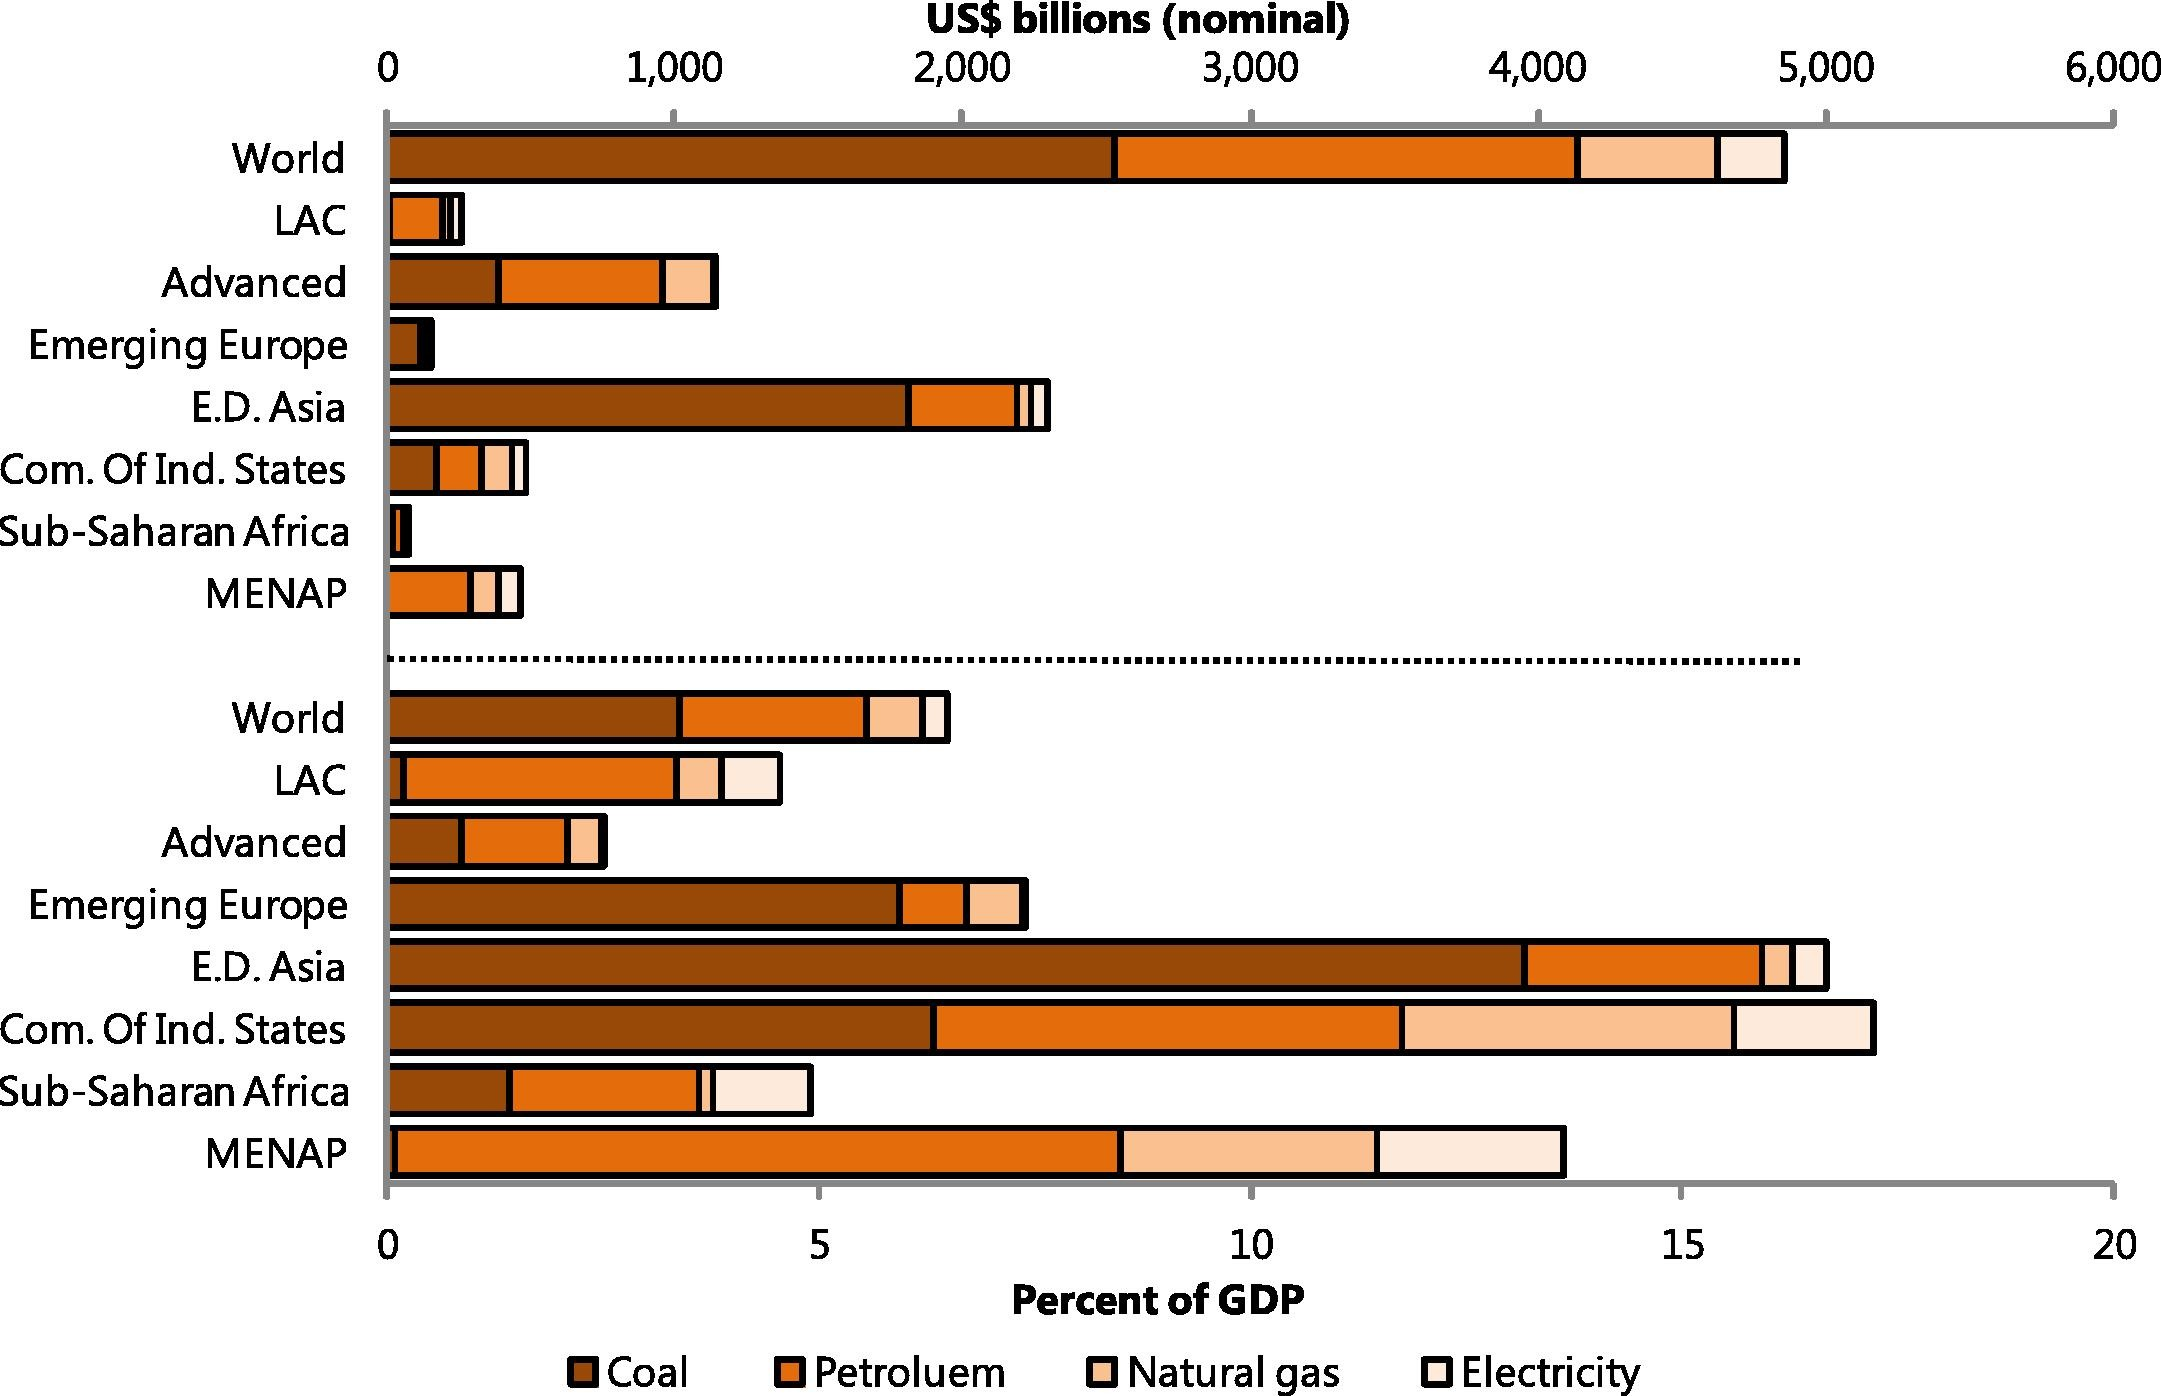 Fossil Fuel Subsidies: Post-Tax Energy Subsidies by Region and Product, 2013